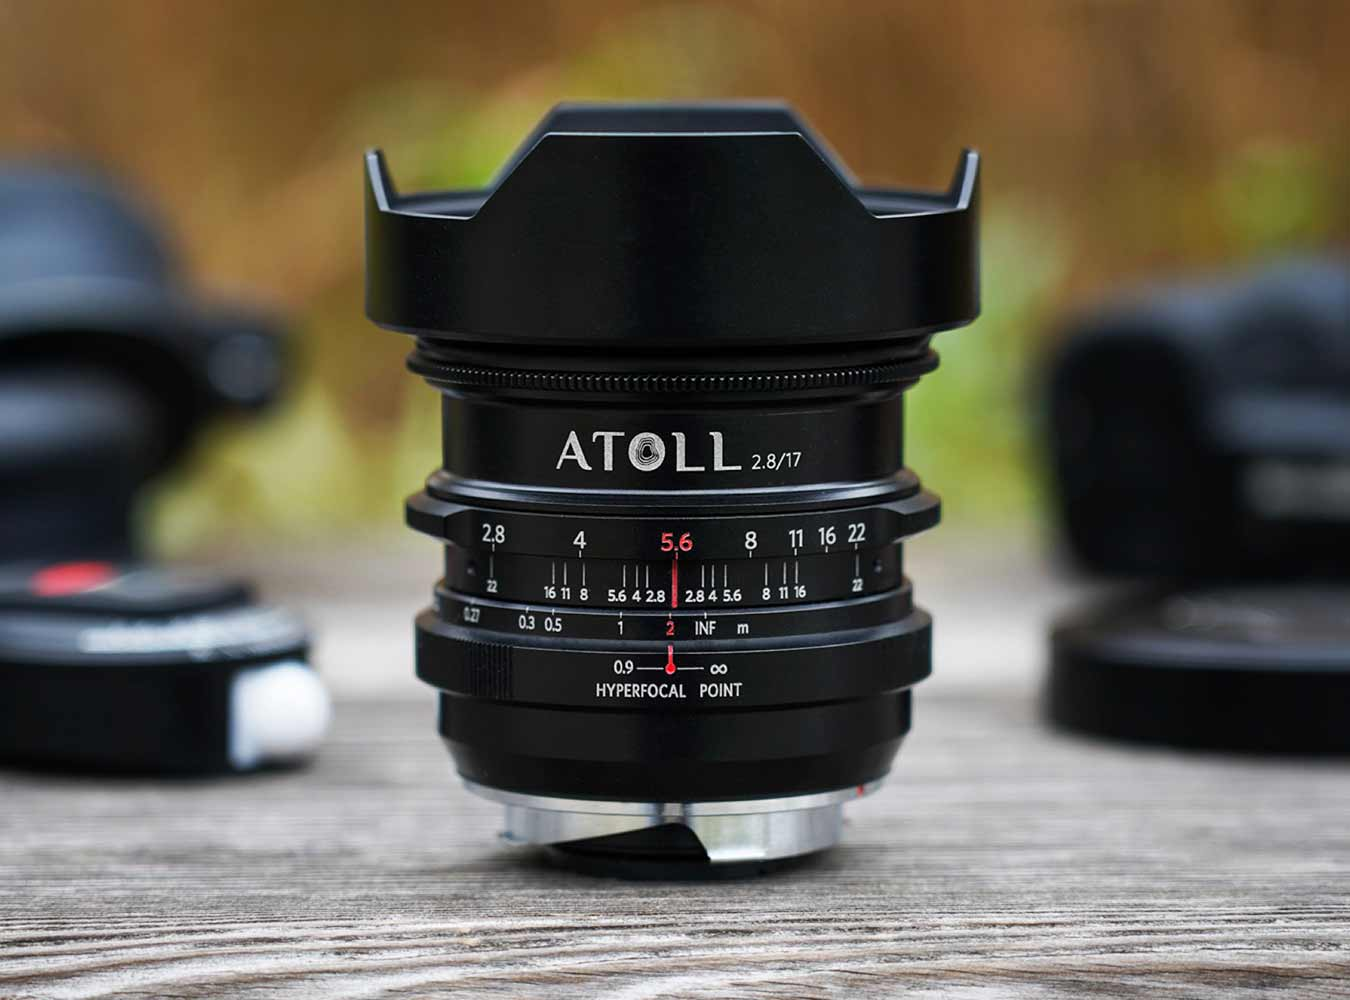 The Atoll Ultra-Wide 2.8/17 Art Lens